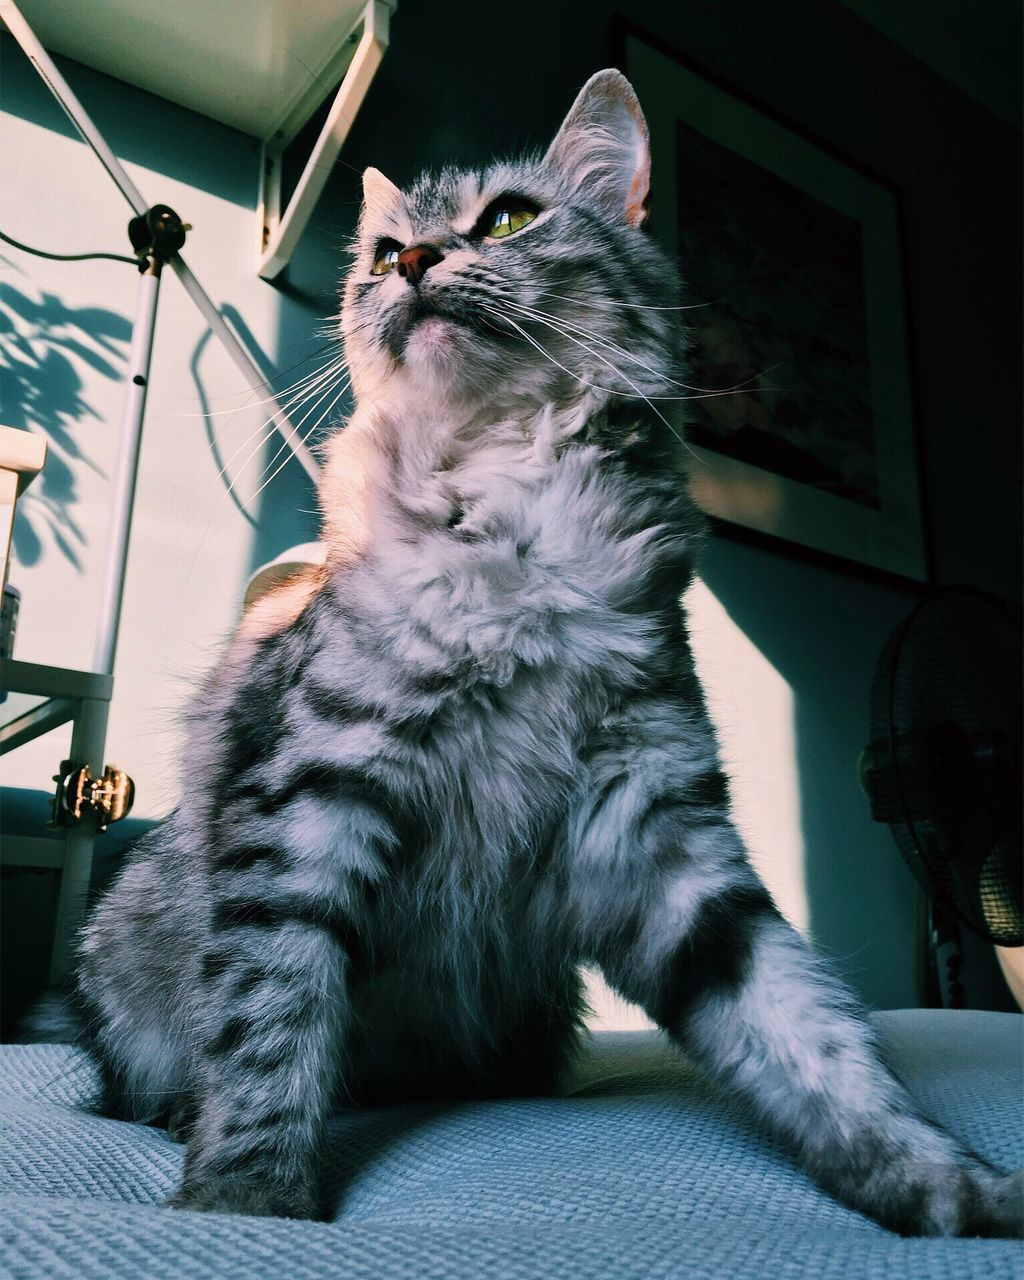 domestic cat, domestic animals, pets, one animal, animal themes, mammal, feline, indoors, no people, sitting, day, close-up